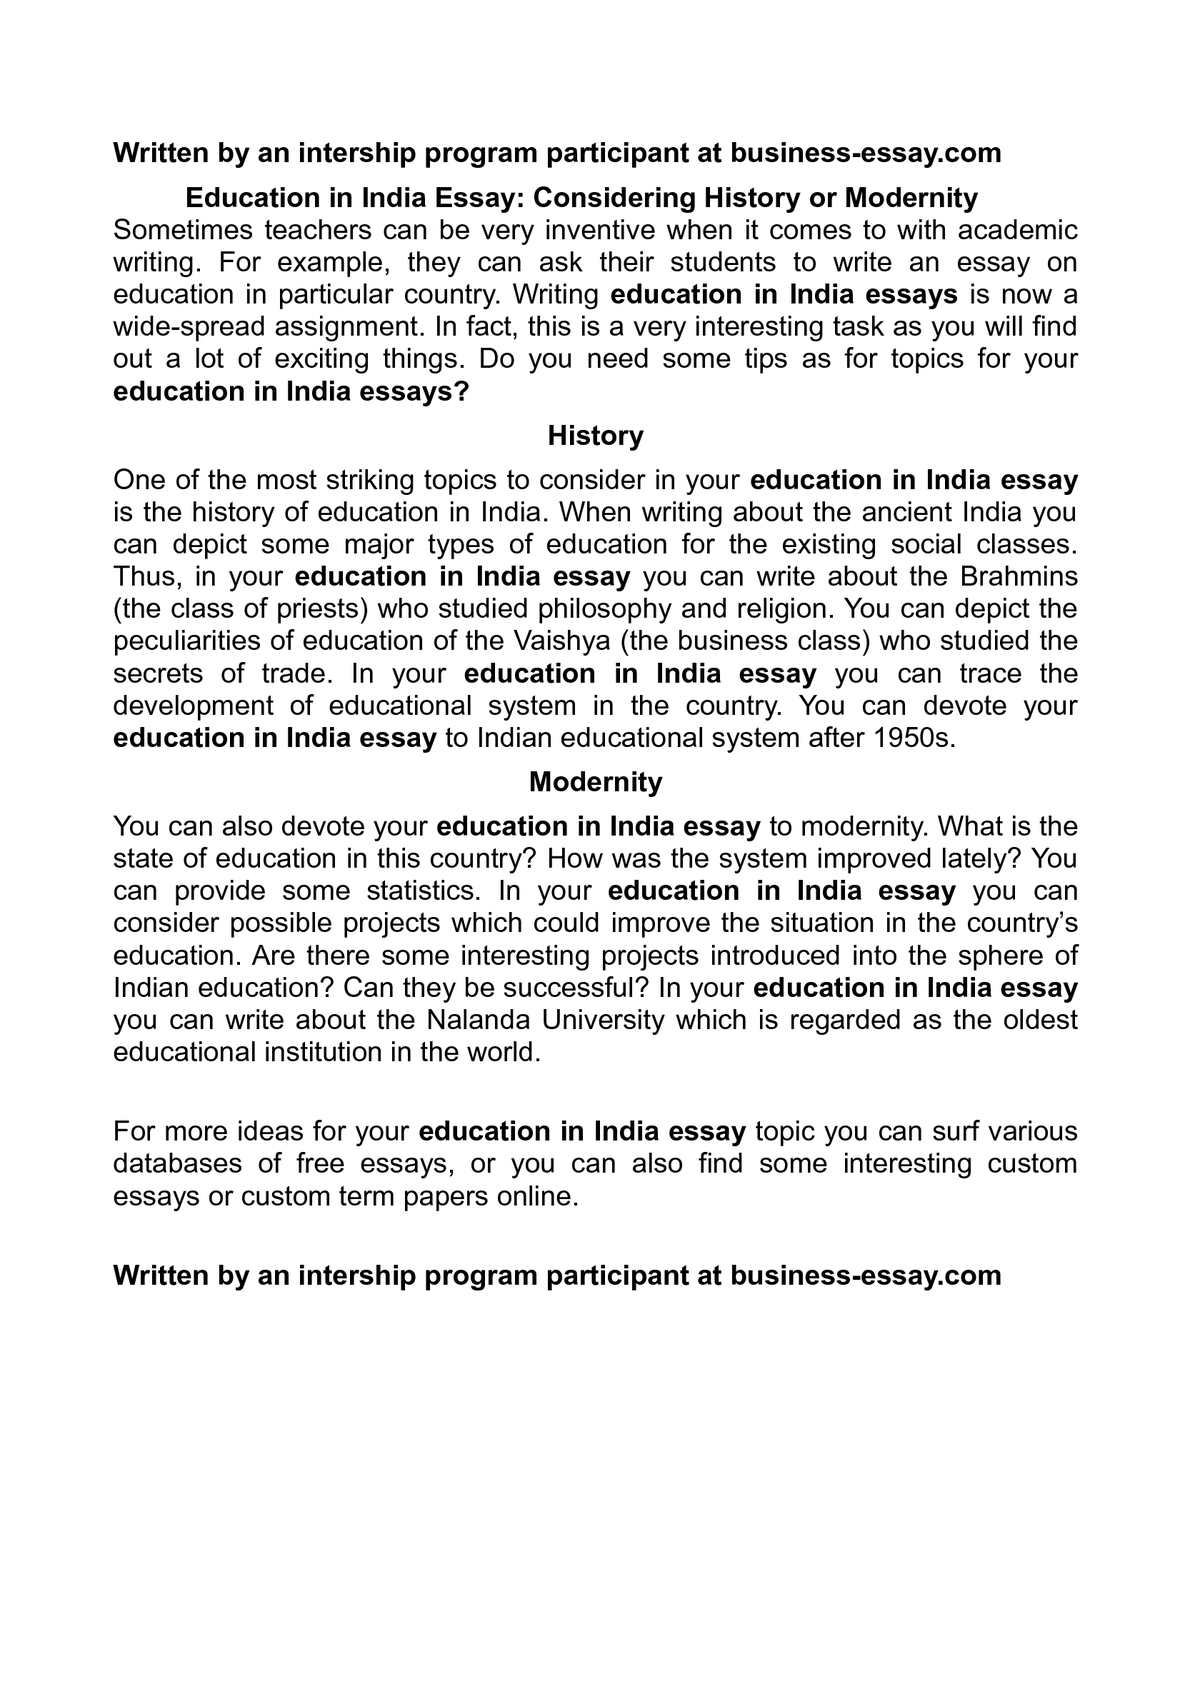 Education for all essay india